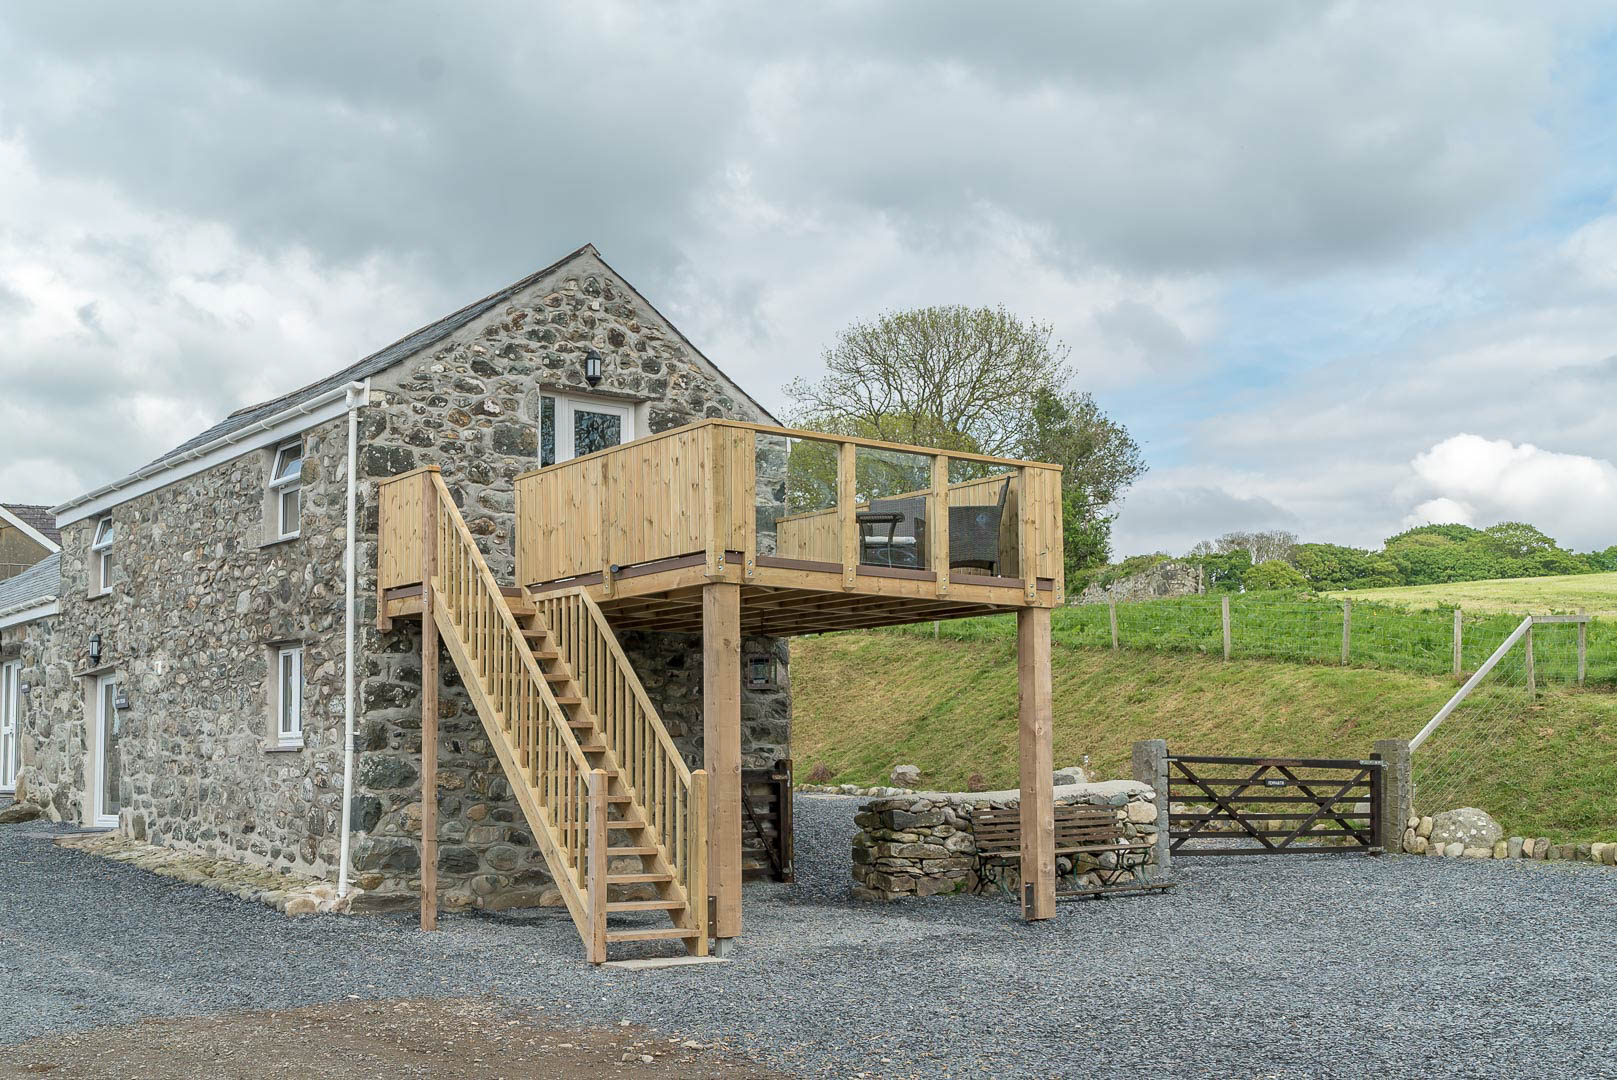 ROMANTIC ONE BEDROOM COTTAGE WALKING DISTANCE FROM THE BEACH | FELIN-PENNARTH